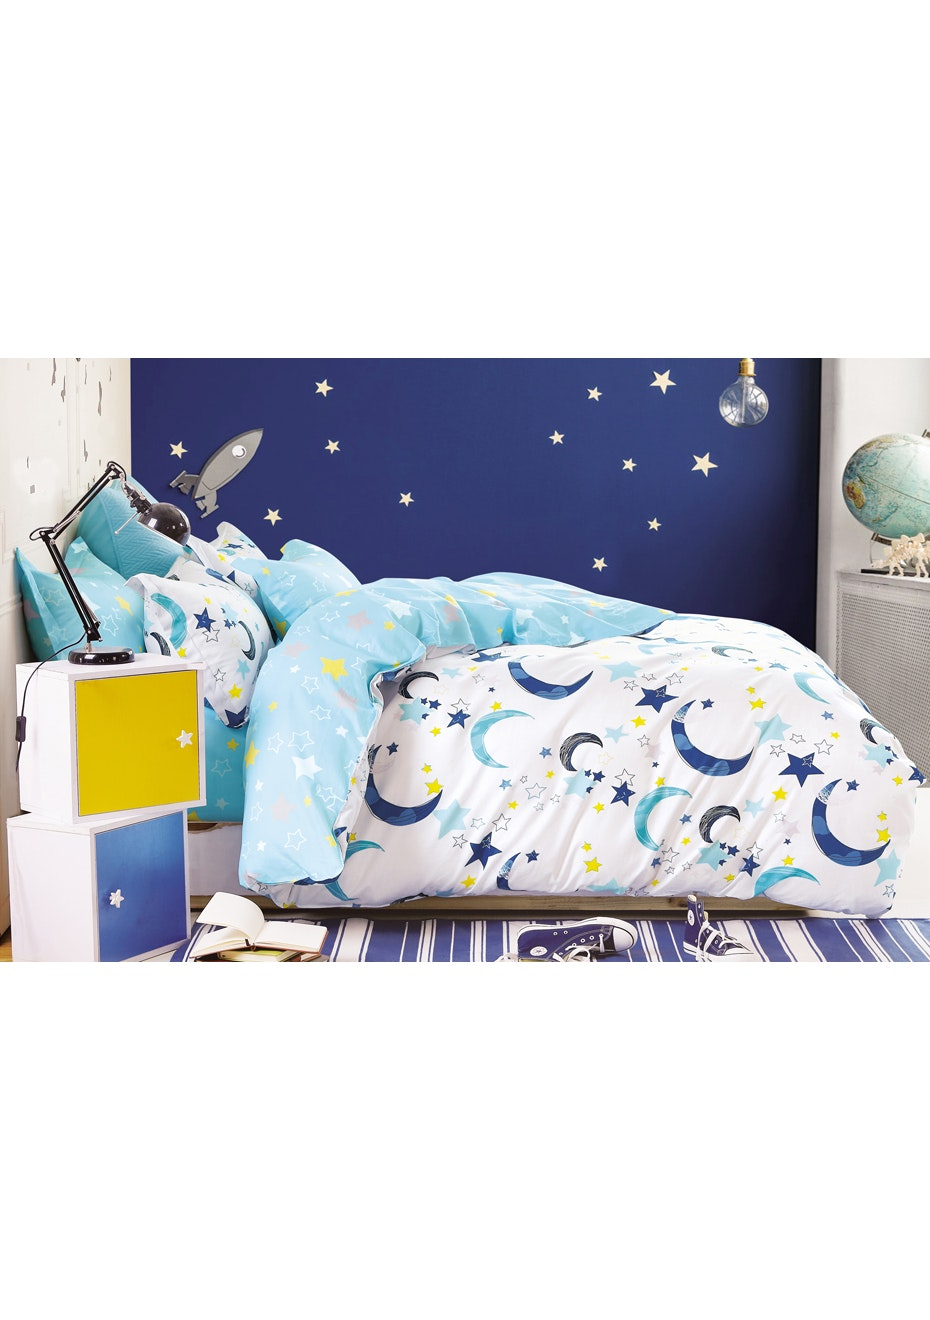 Galaxy Quilt Cover Set - Reversible Design - 100% Cotton - Single Bed